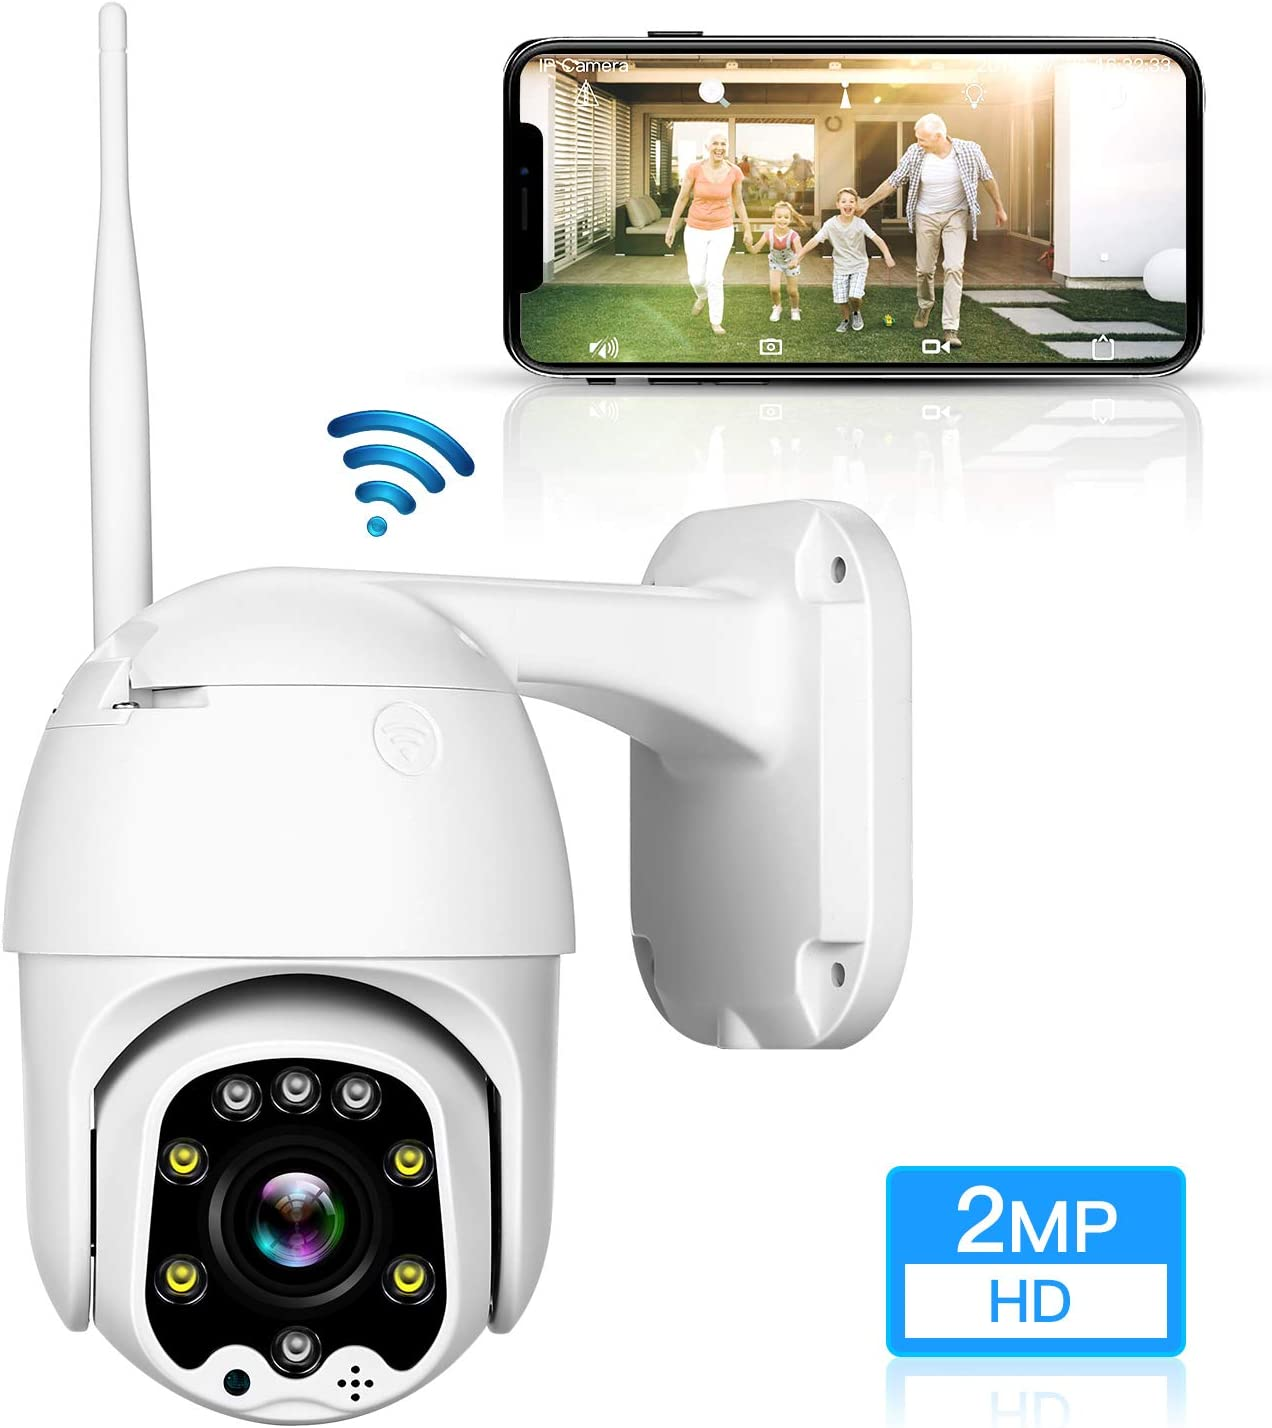 TOMLOV 2MP HD WiFi Outdoor PTZ Security Camera with 5X 2.7-13.5mm Optical Zoom, 10921080 Pixel, Intelligent Full-Color Night Vision, Two-Way Audio, 5db External Antenna, for House